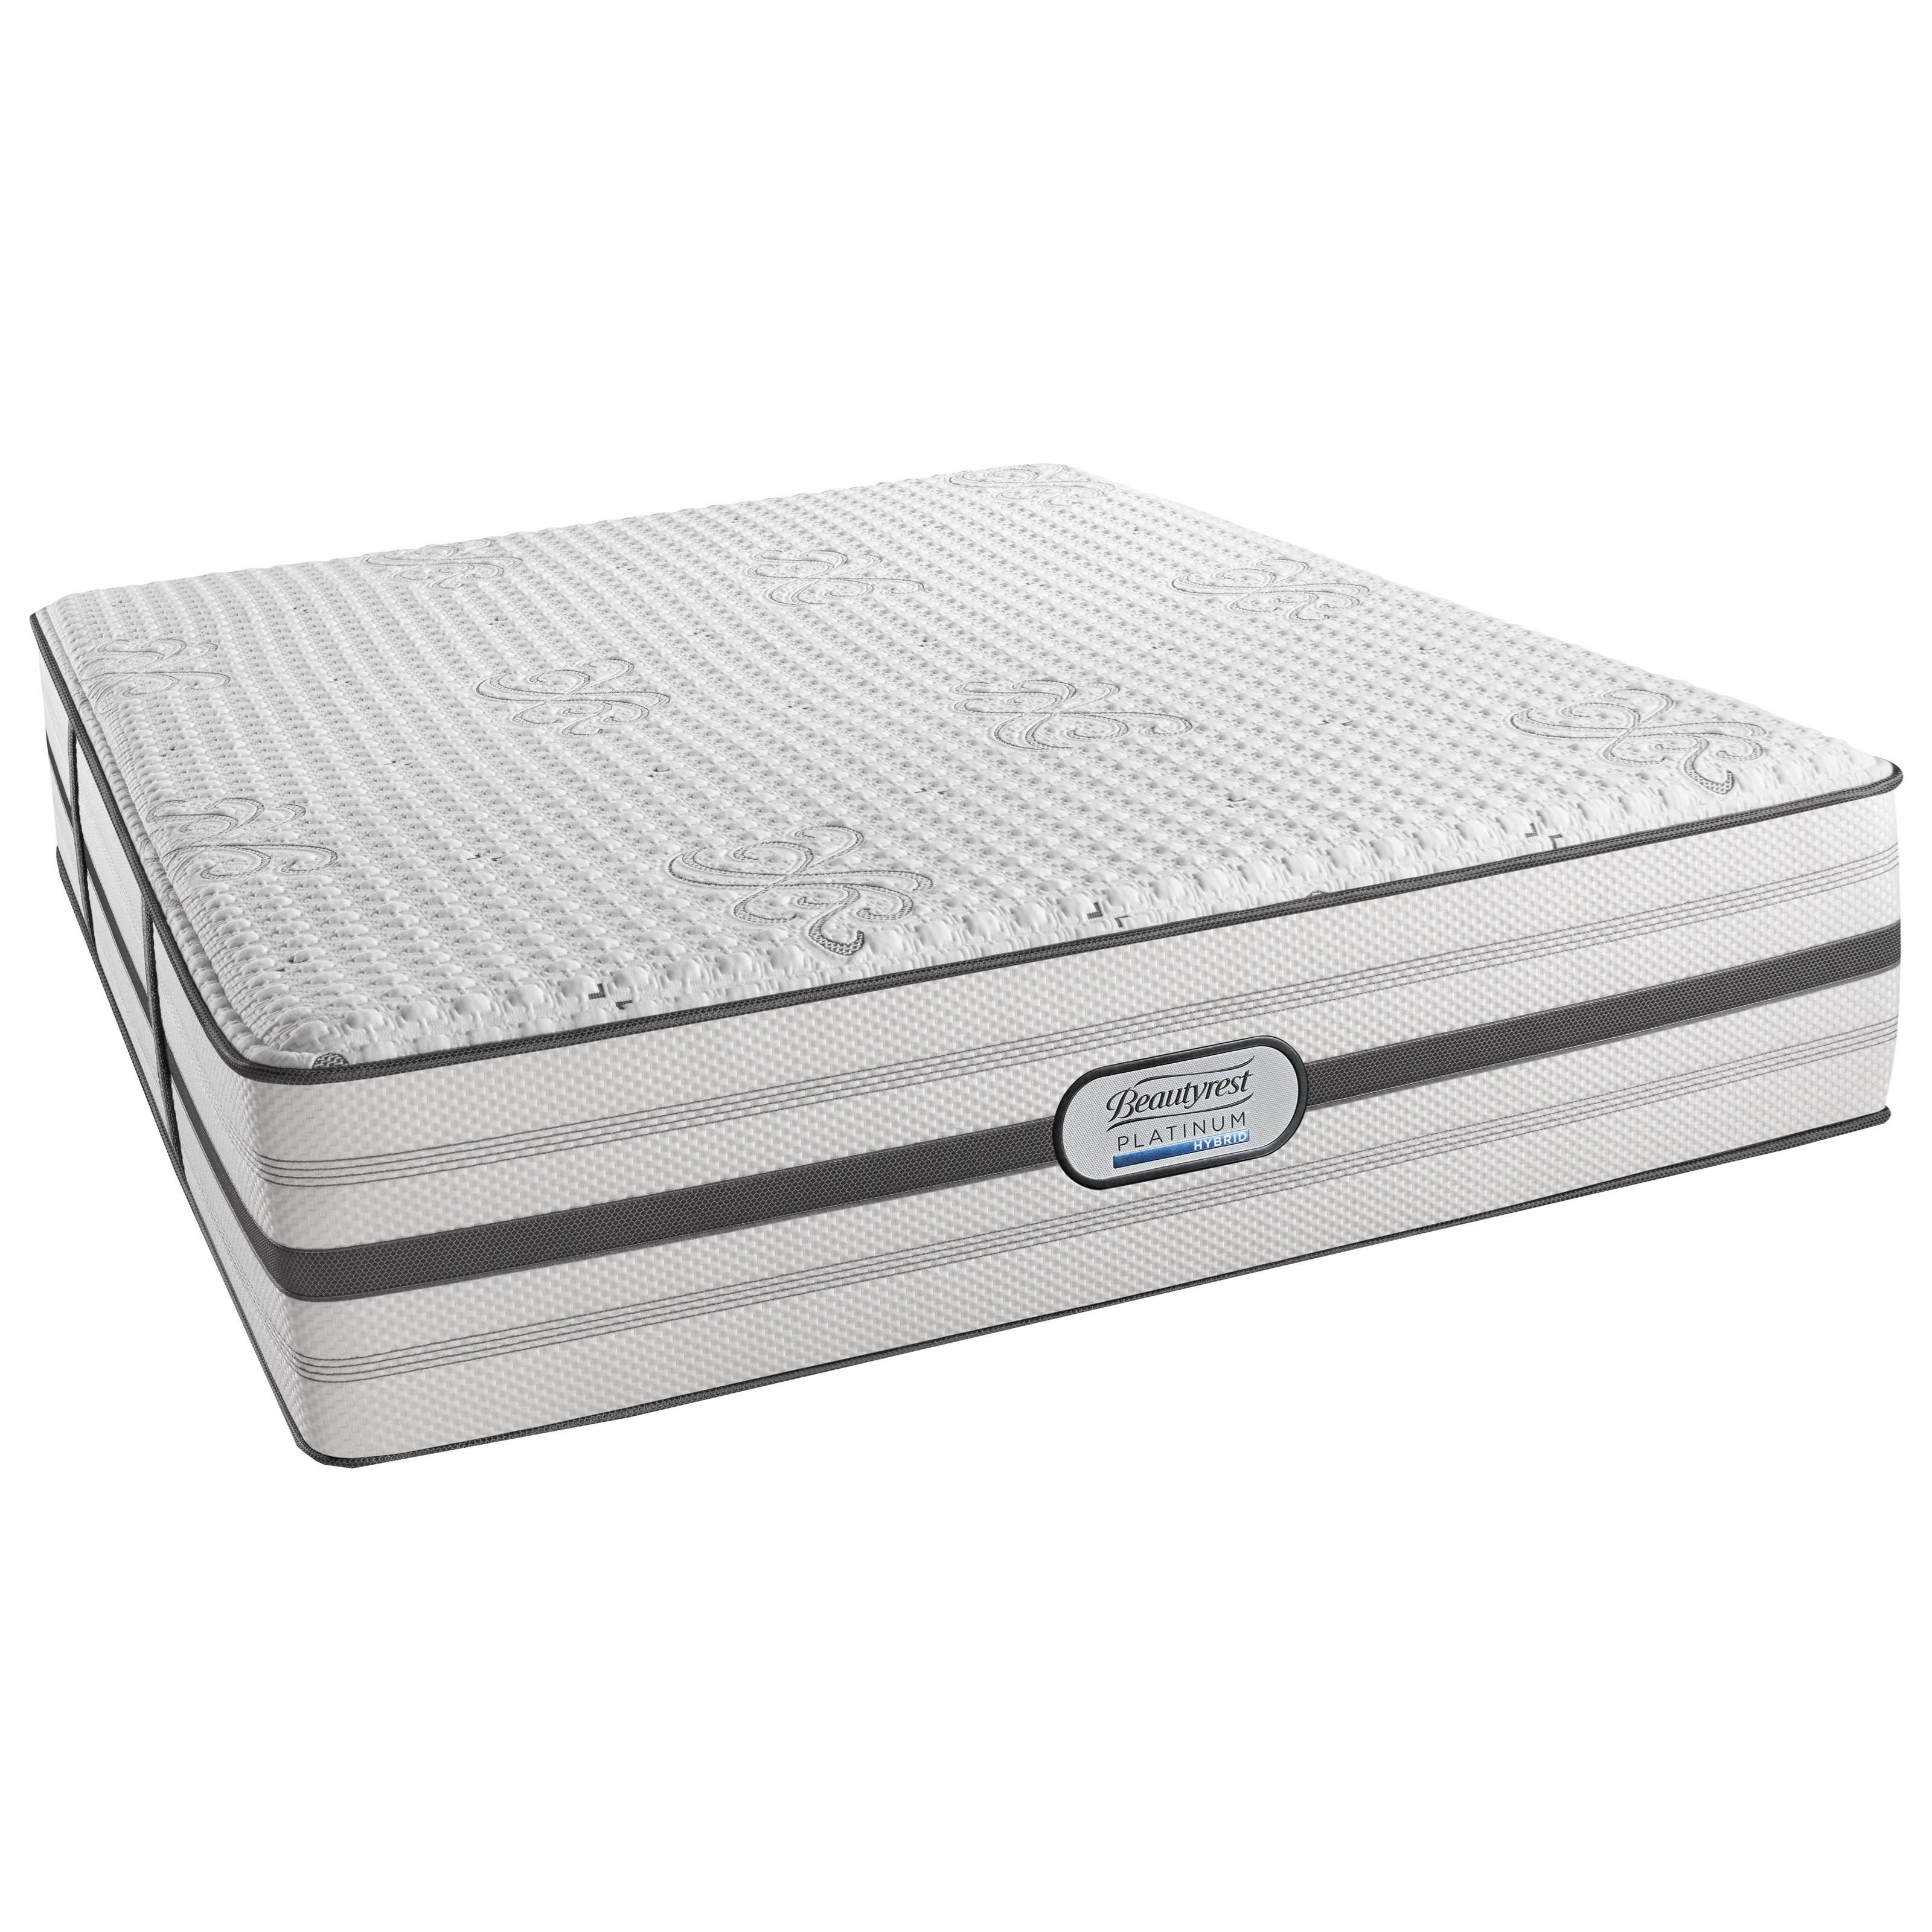 Beautyrest Platinum Austin Twin XL Luxury Firm Adjustable Set - Item Number: BRHLV1LF-TXL+SM3-TXL